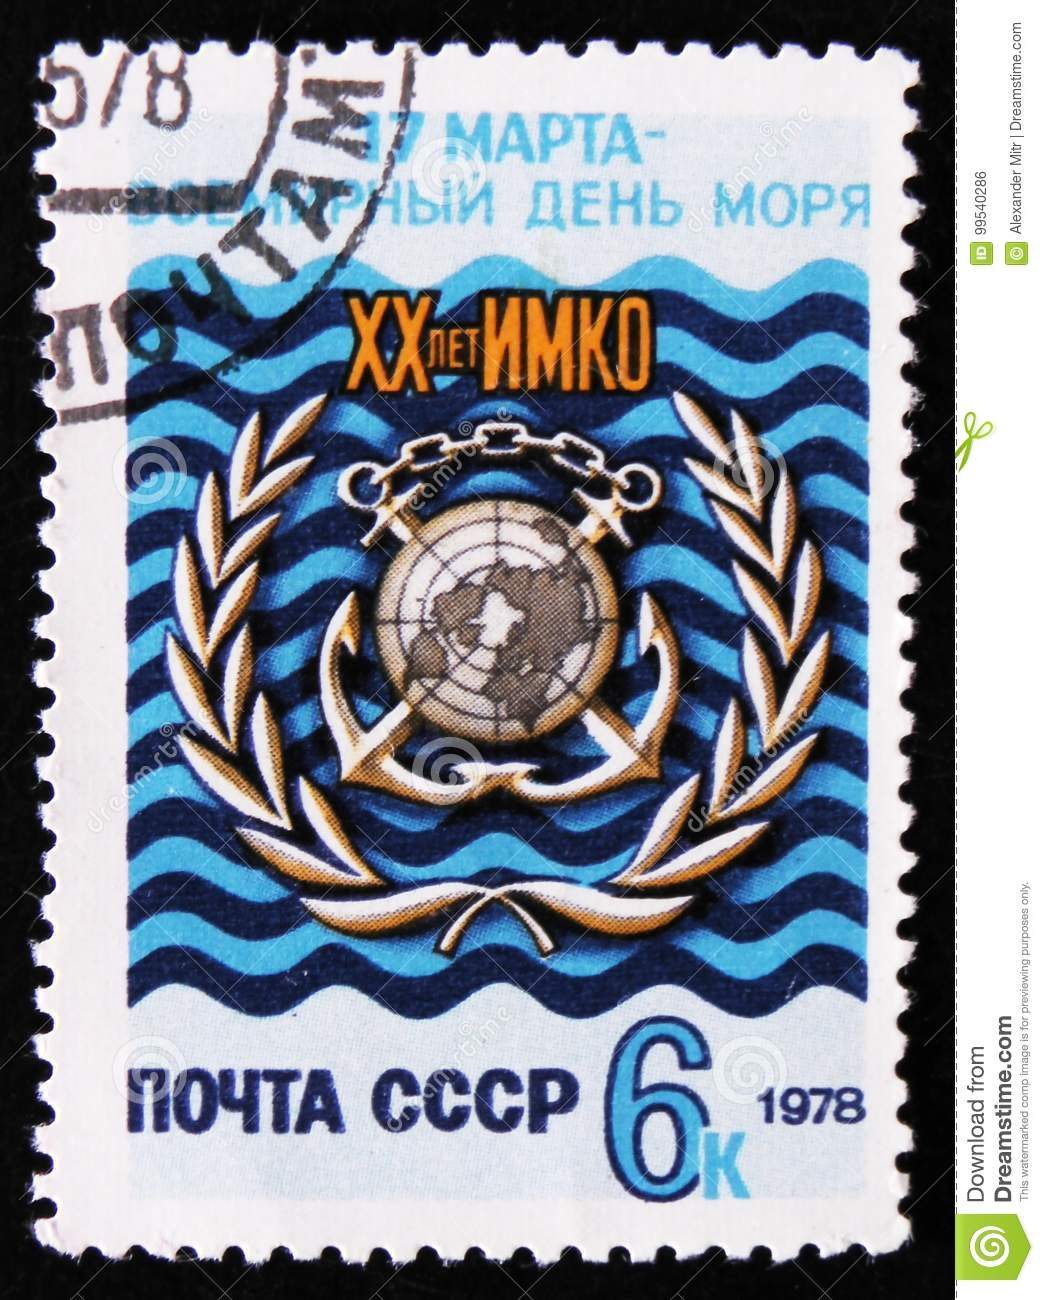 MOSCOW, RUSSIA - APRIL 2, 2017: A stamp printed in Russia dedicated to World Maritime Day, circa 1978